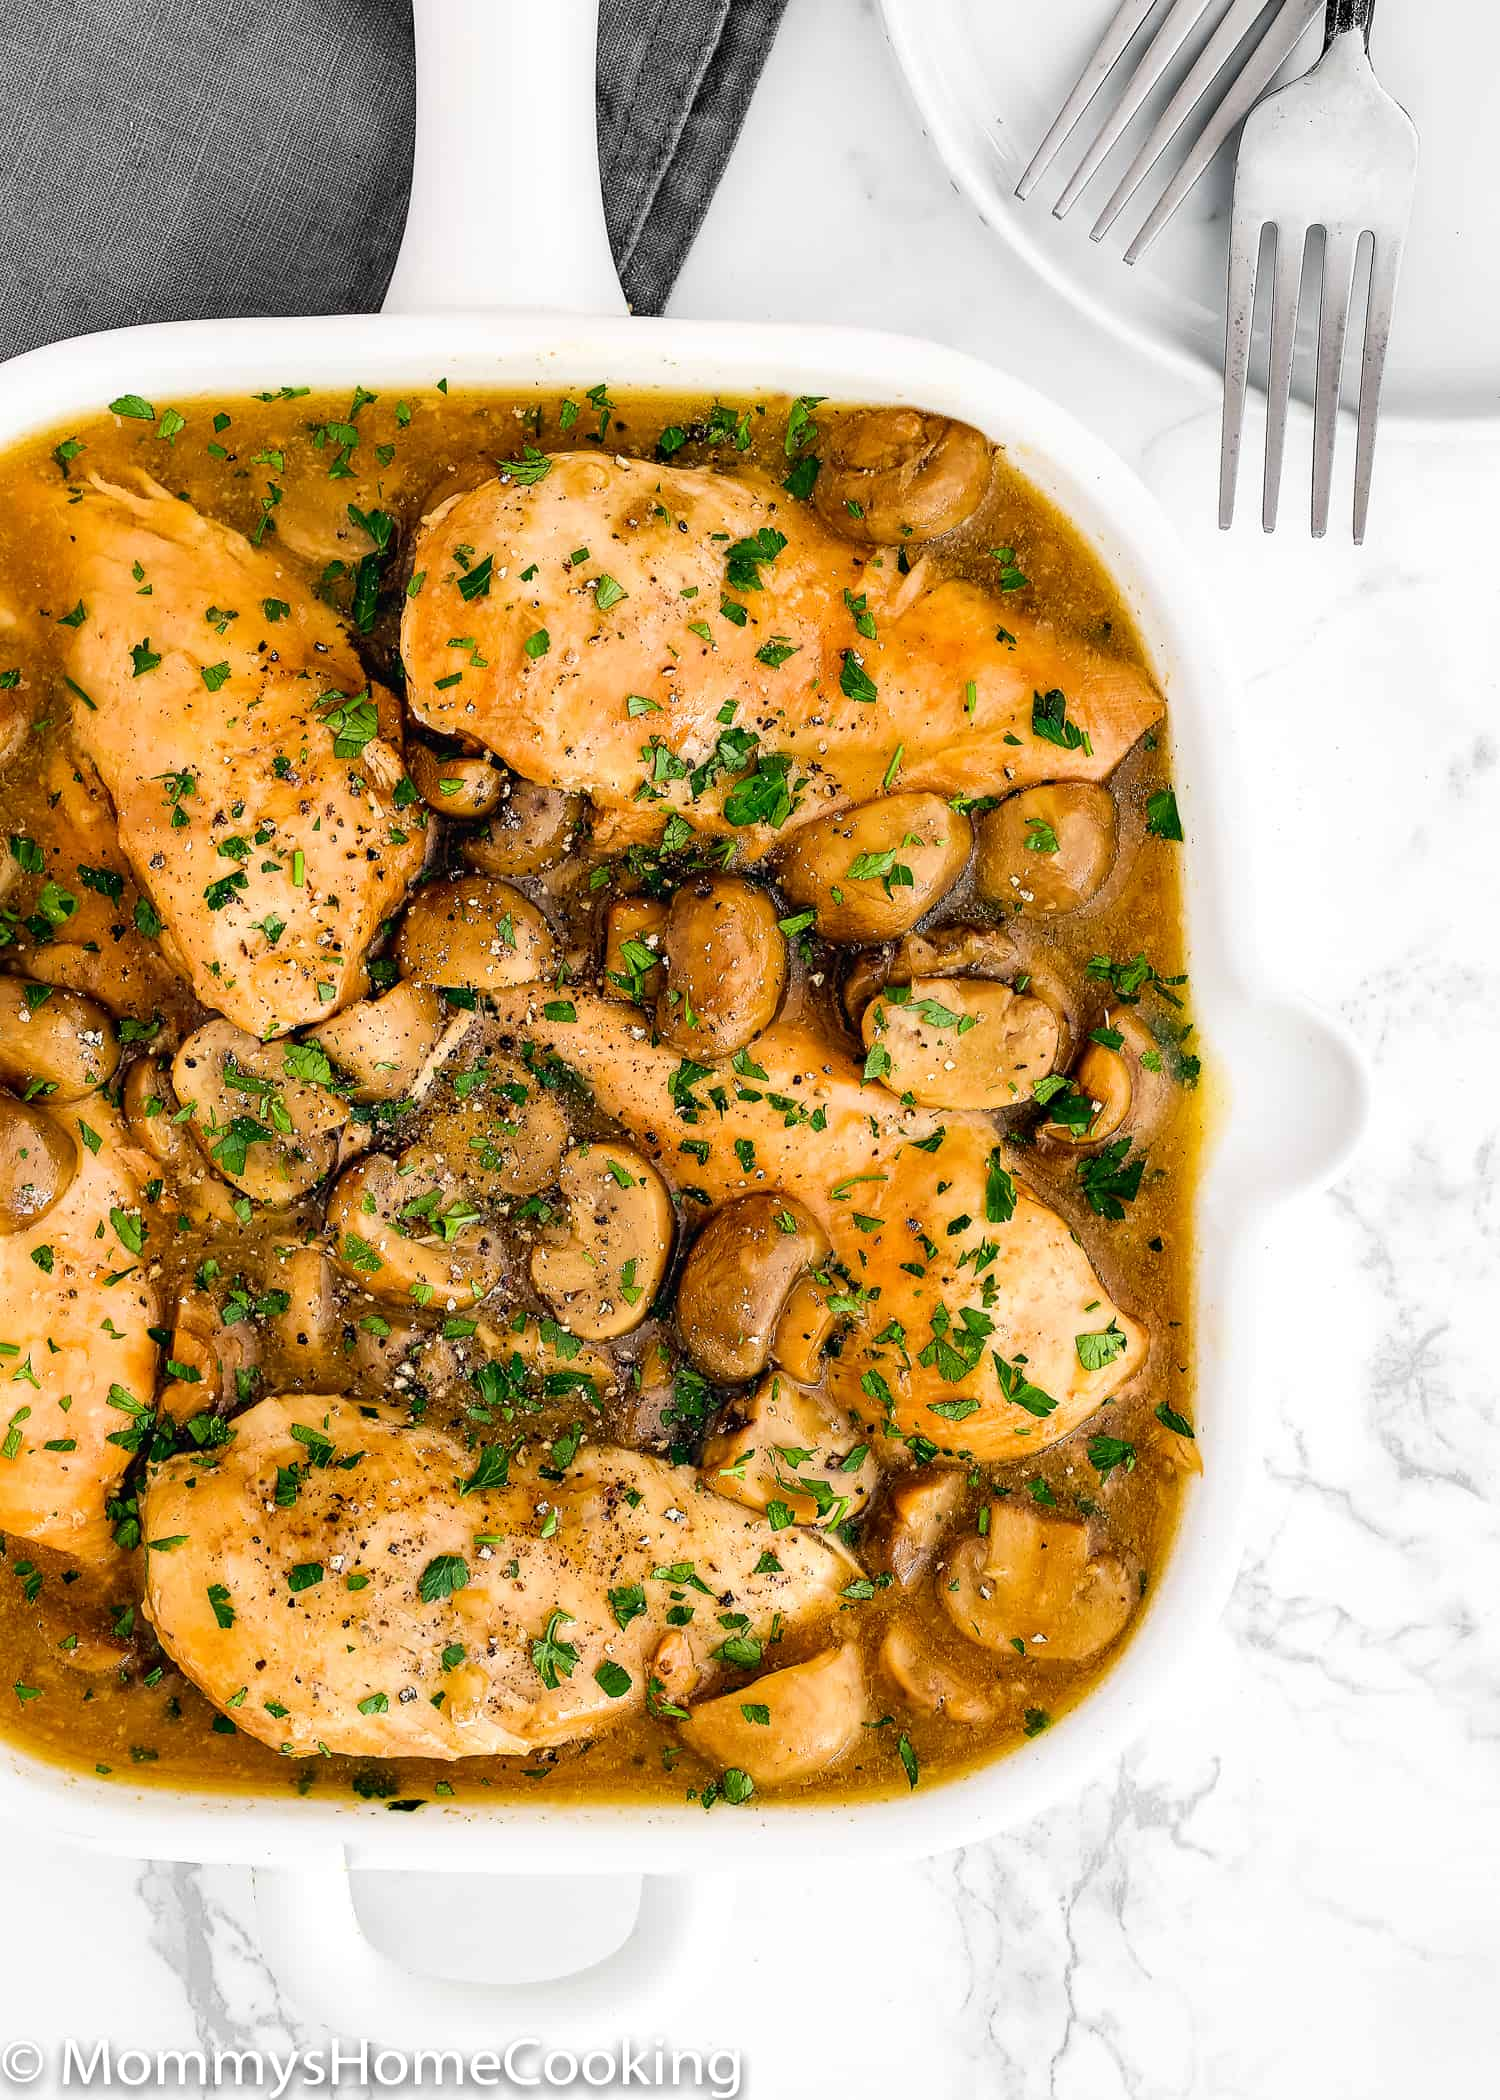 This Easy Instant Pot Chicken Madeira recipe always gets rave reviews at the dinner table!  Easy to make on busy weeknights but yet fancy to serve guests. I am sure it will become a new favorite for your family. https://mommyshomecooking.com